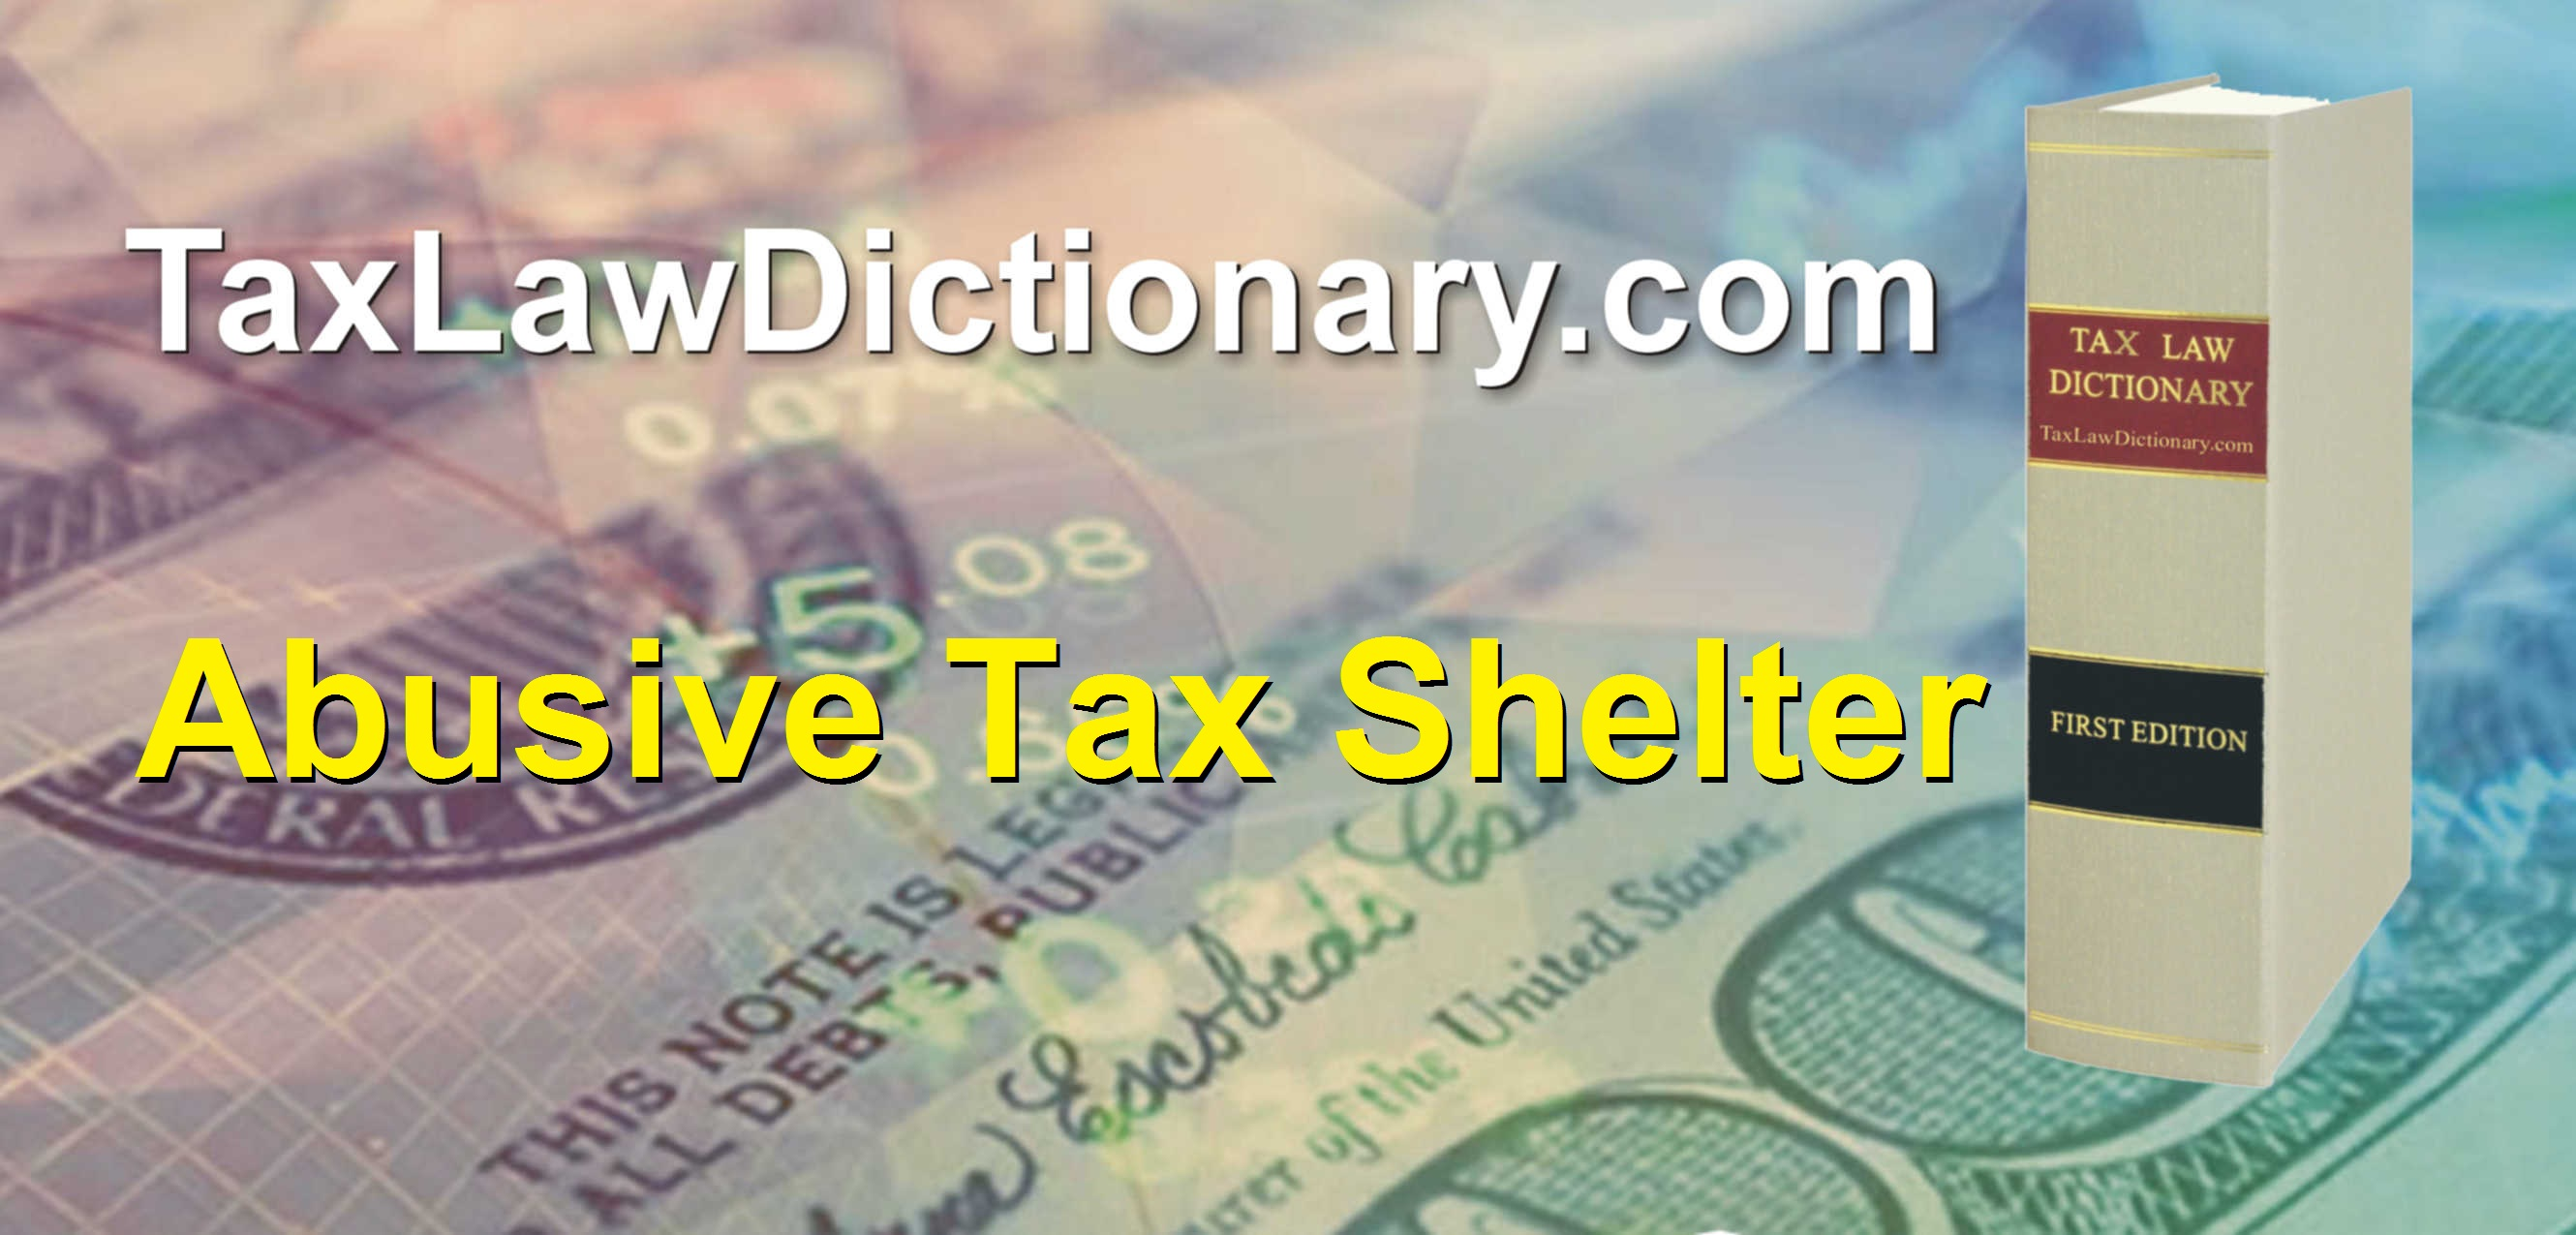 Abusive Tax Shelter